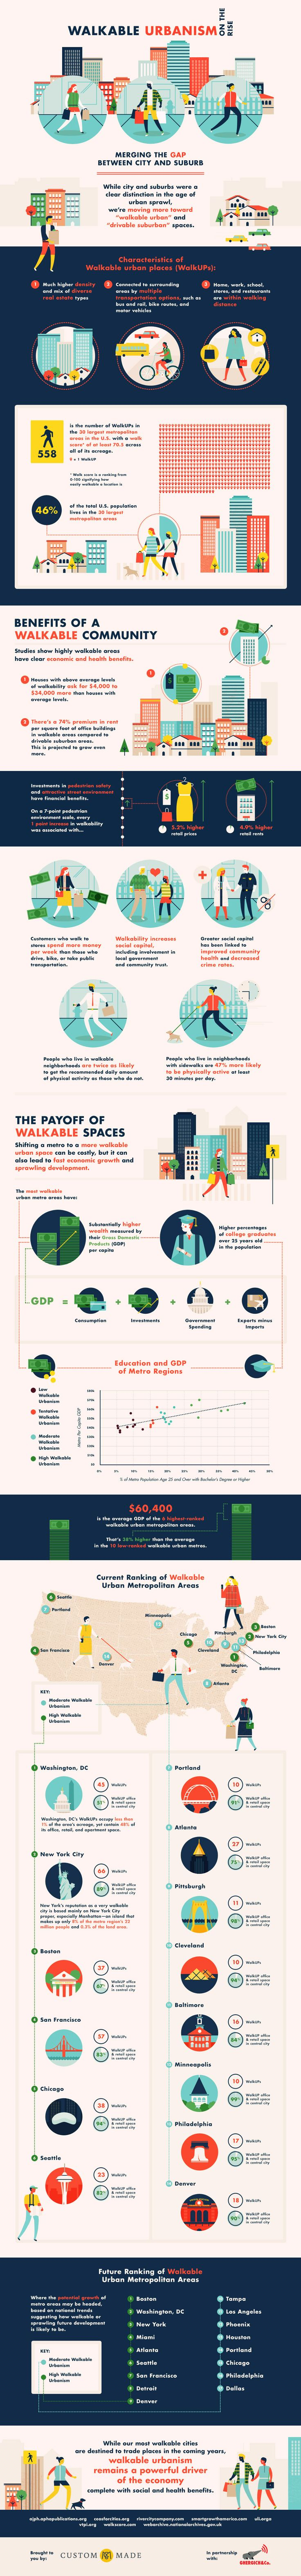 Walkable Urbanism on the Rise Infographic - http://www.custommade.com/blog/walkable-urbanism/